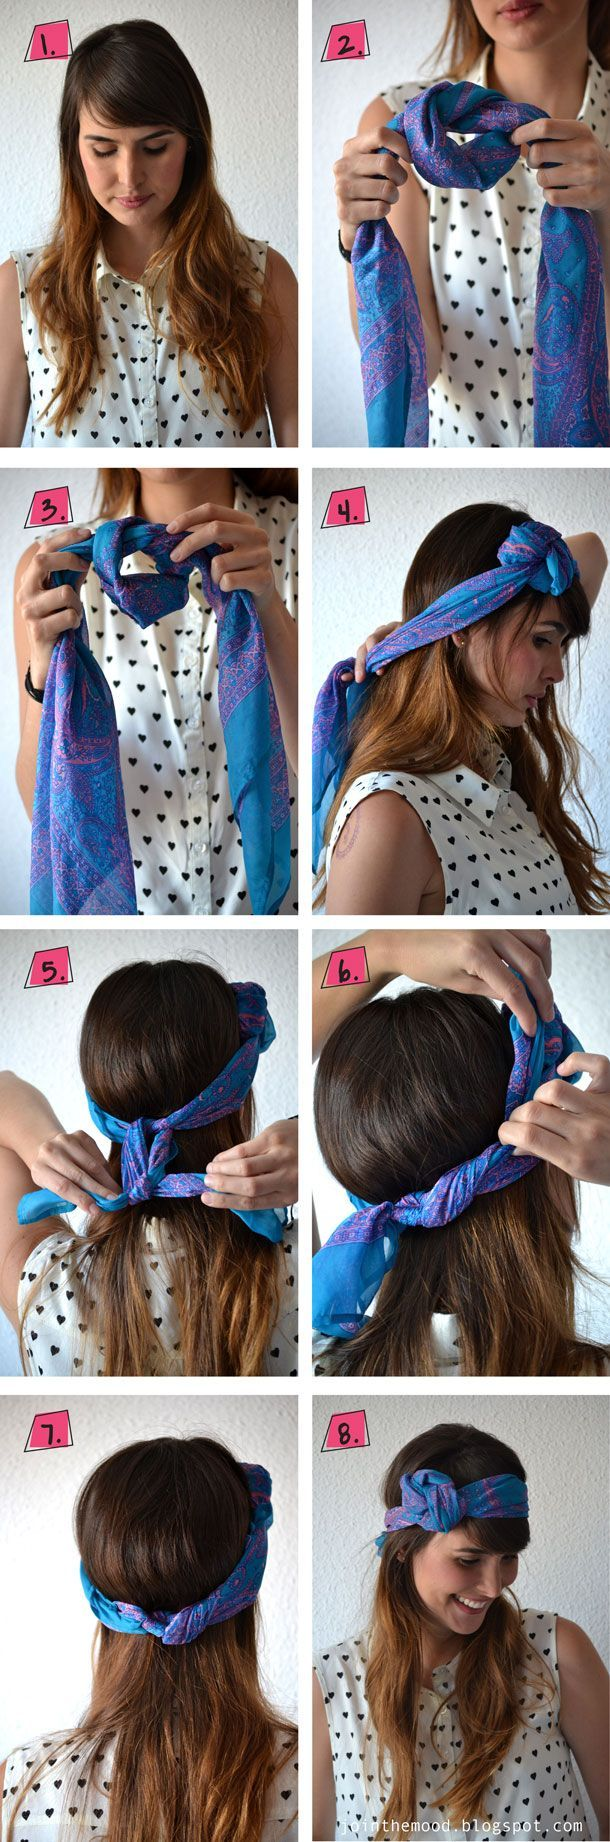 20 Ways To Tie A Scarf In Your Hair That Don't Look Like You're Hiding Something